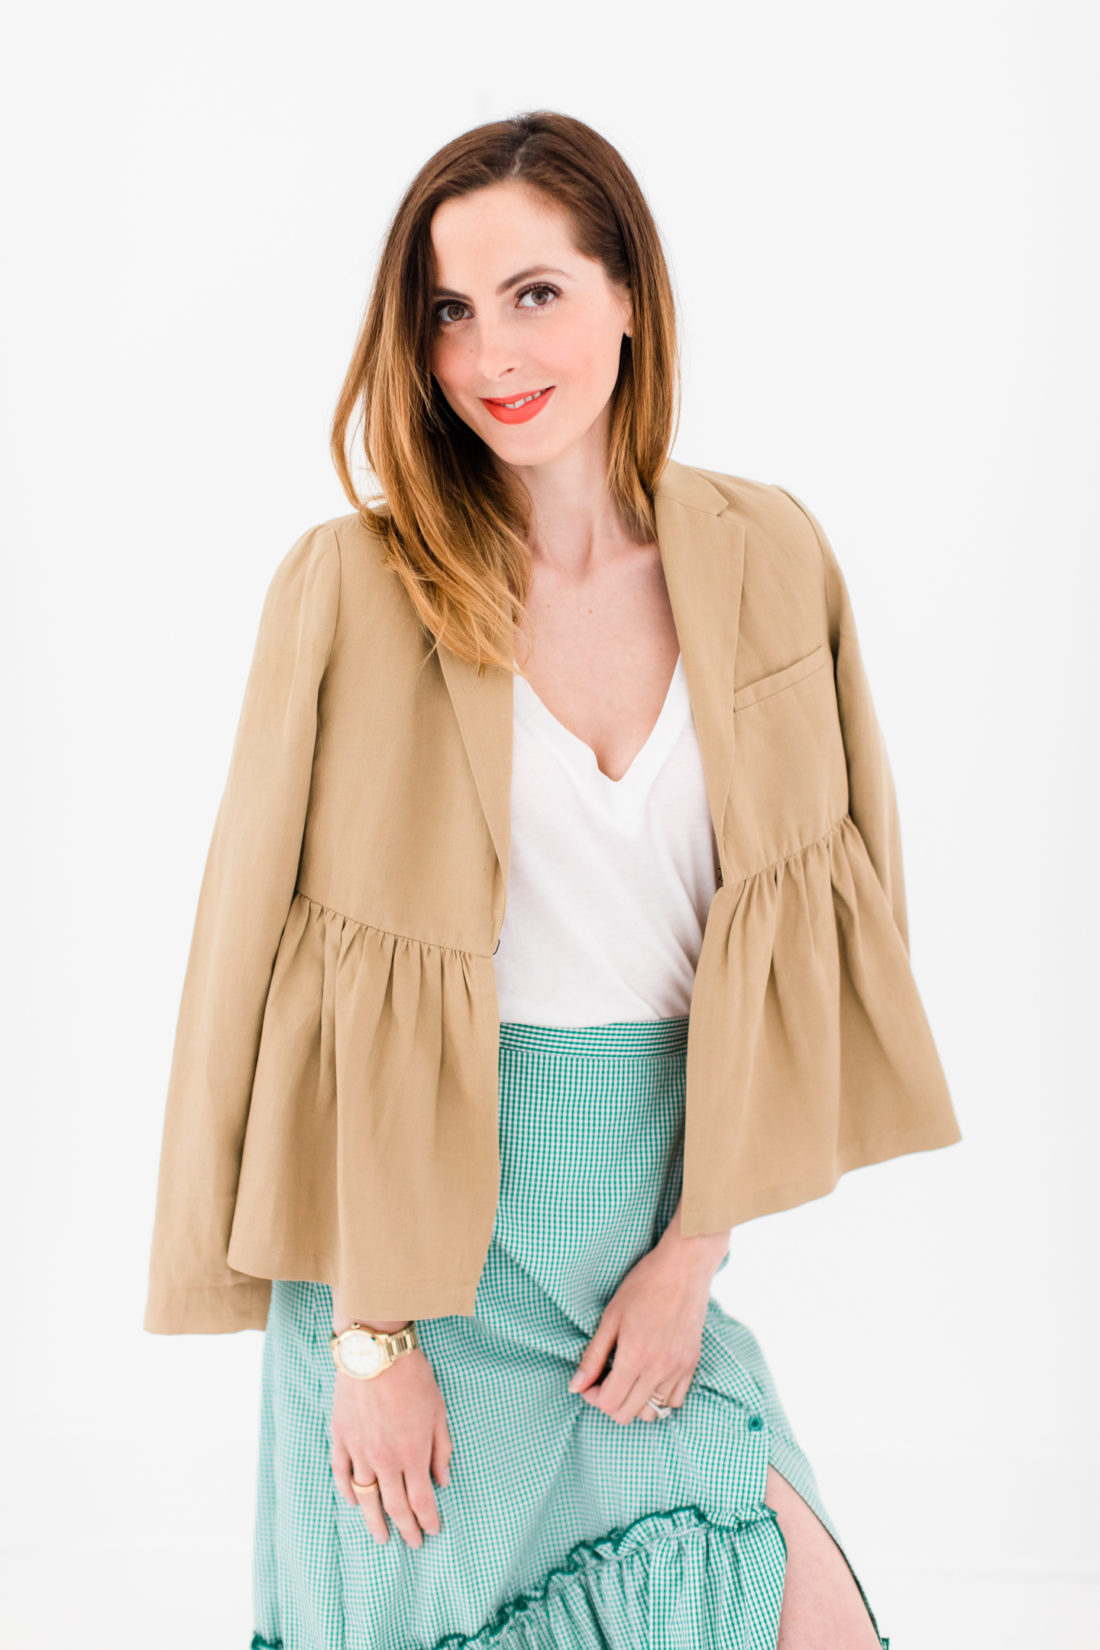 Eva Amurri Martino wears a green gingham ruffled skirt, white Tee, and tan ruffled jacket by BURU as part of a post about how to pack a suitcase